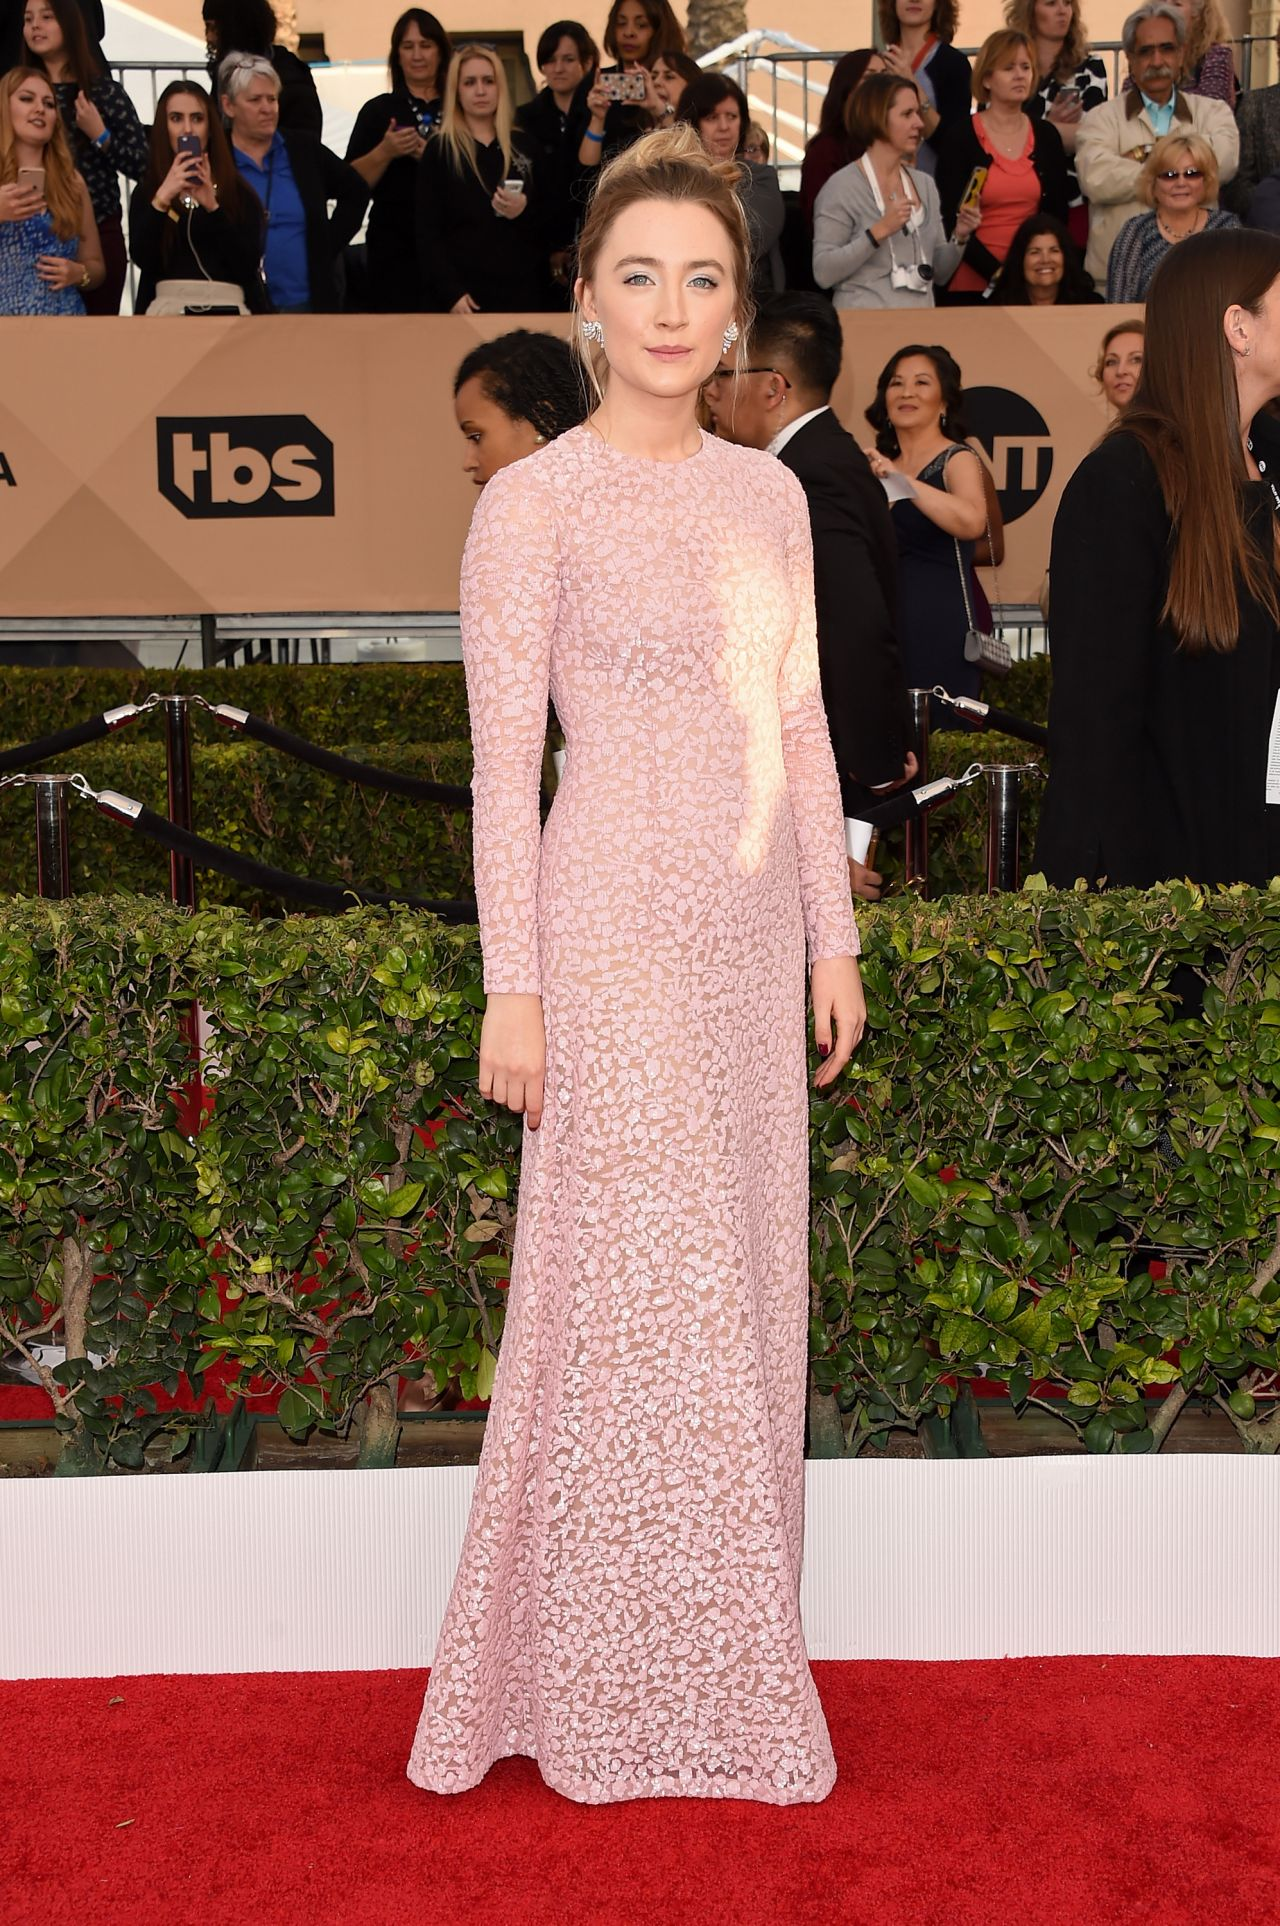 saoirse-ronan-sag-awards-2016-at-shrine-auditorium-in-los-angeles-1